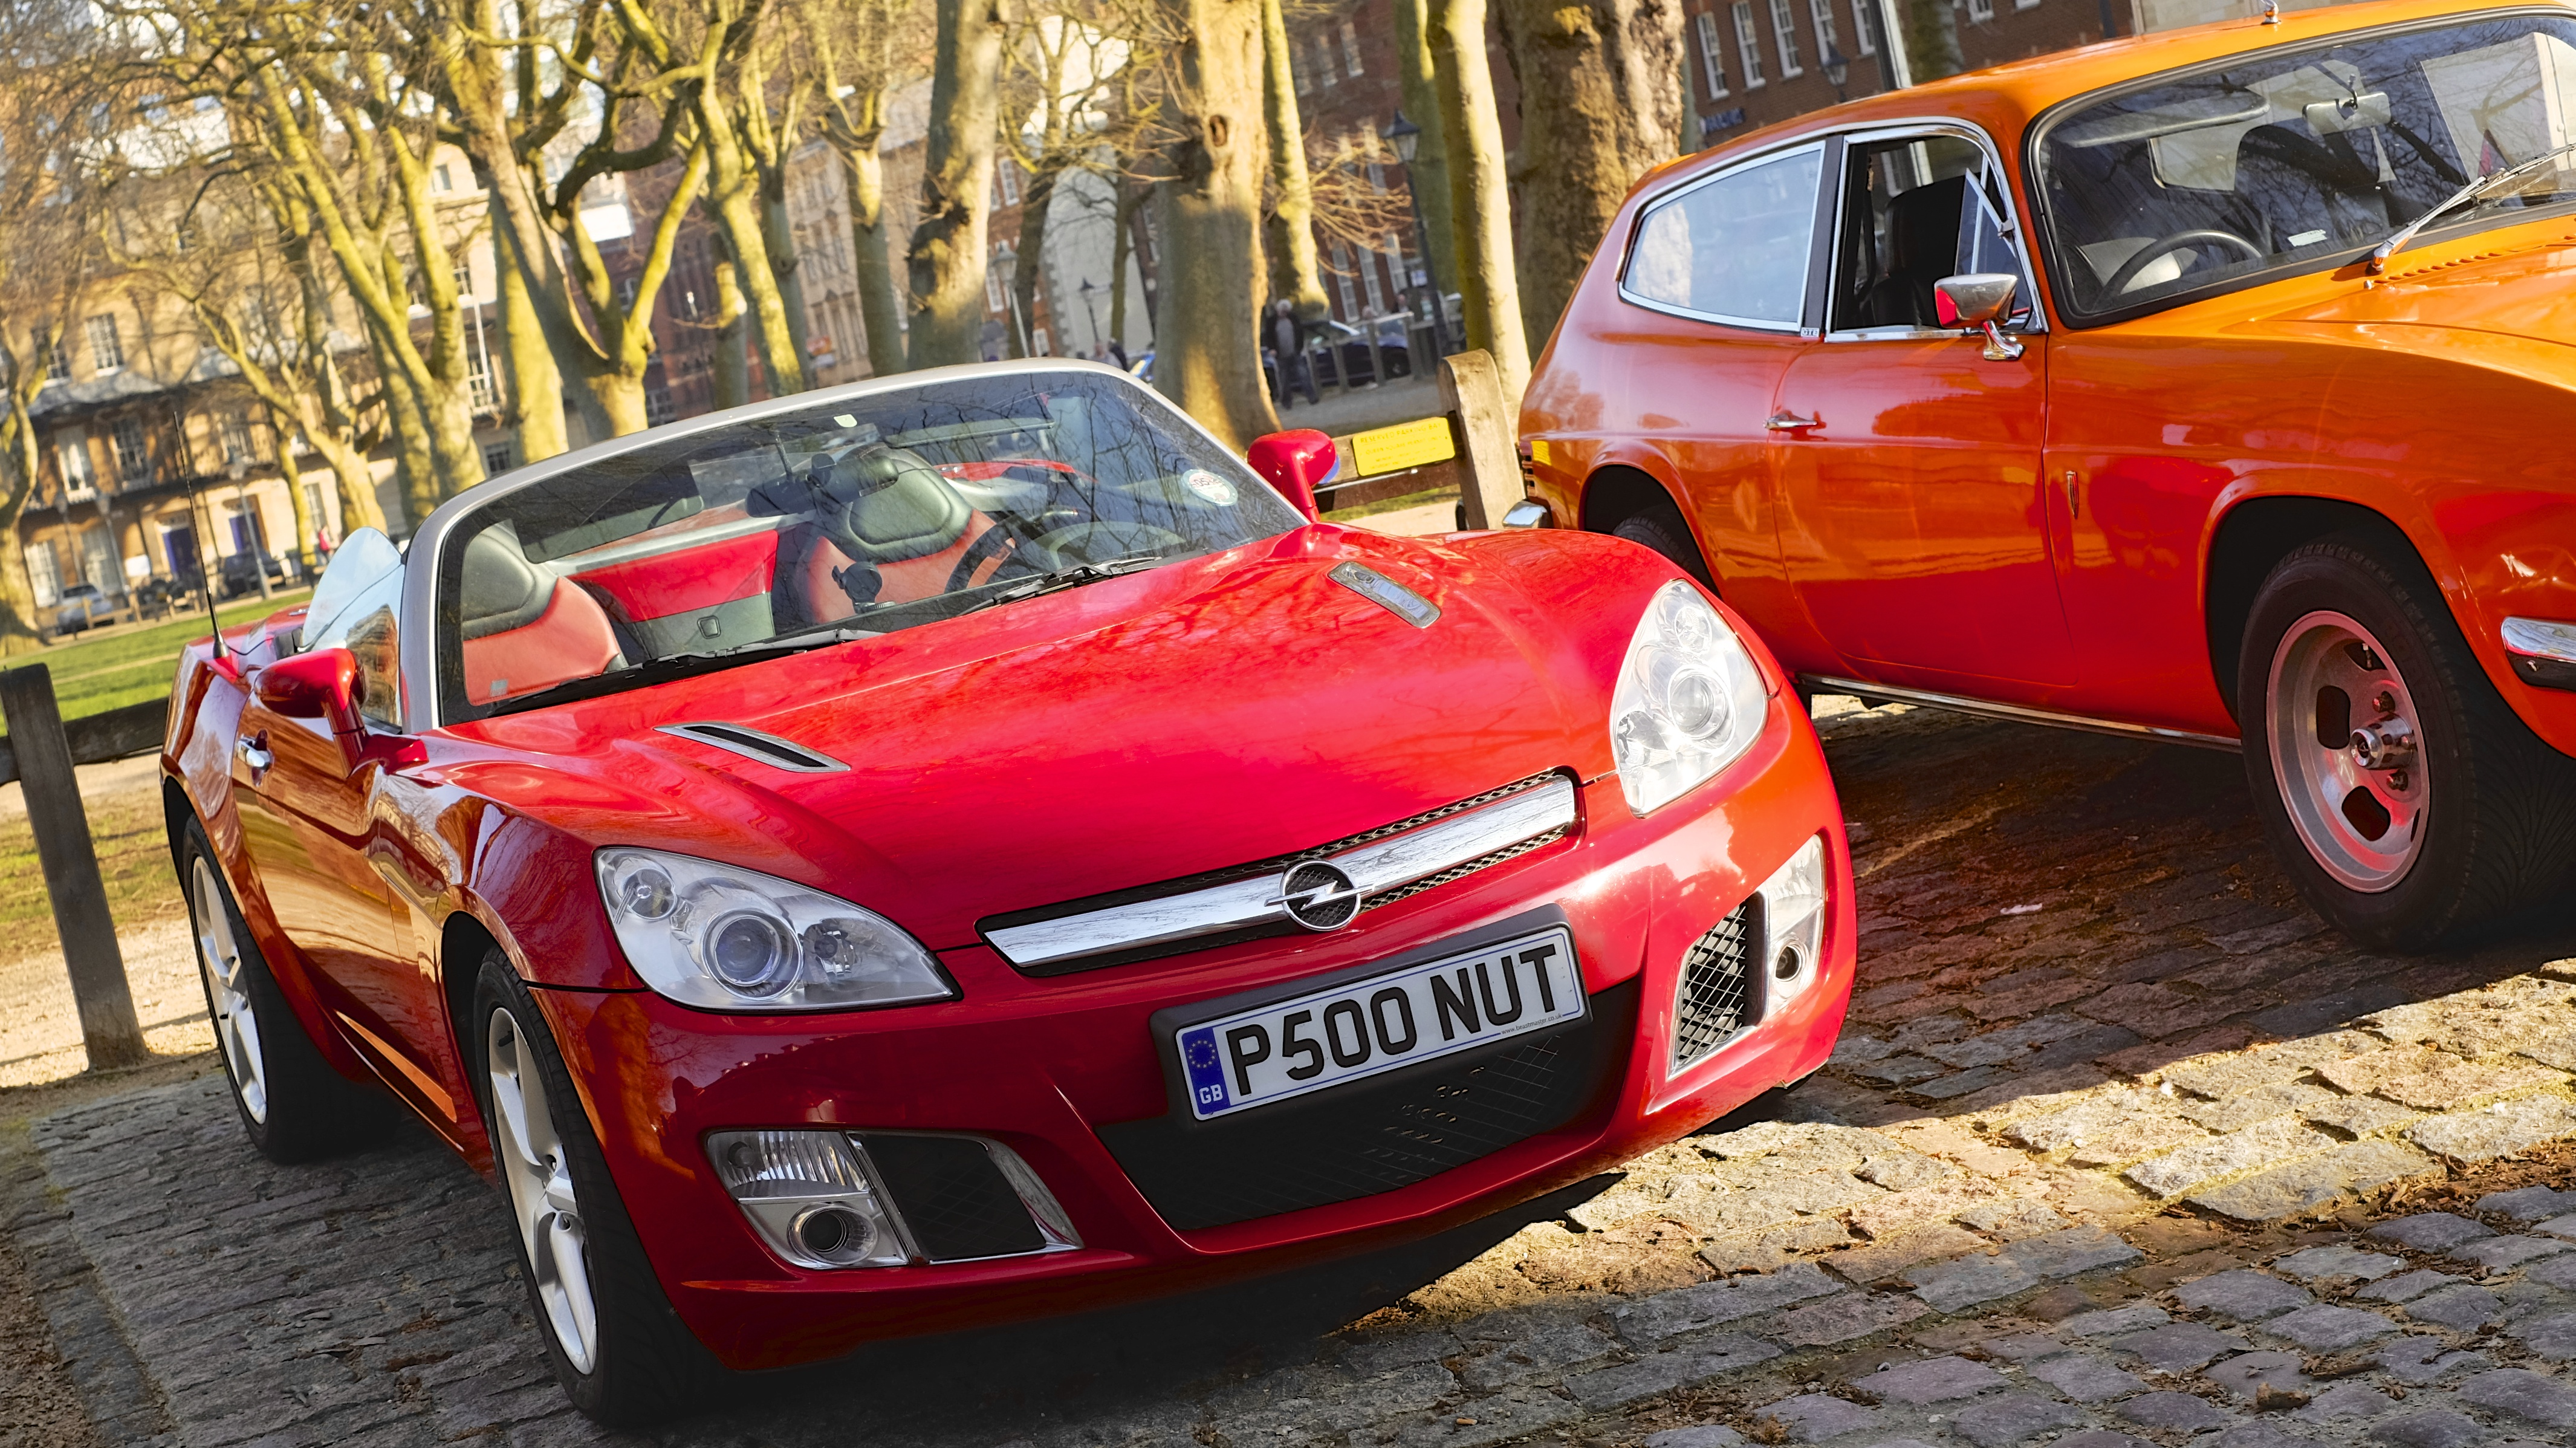 Car Events The Avenue Breakfast Club Bristol Th March - Car events today near me